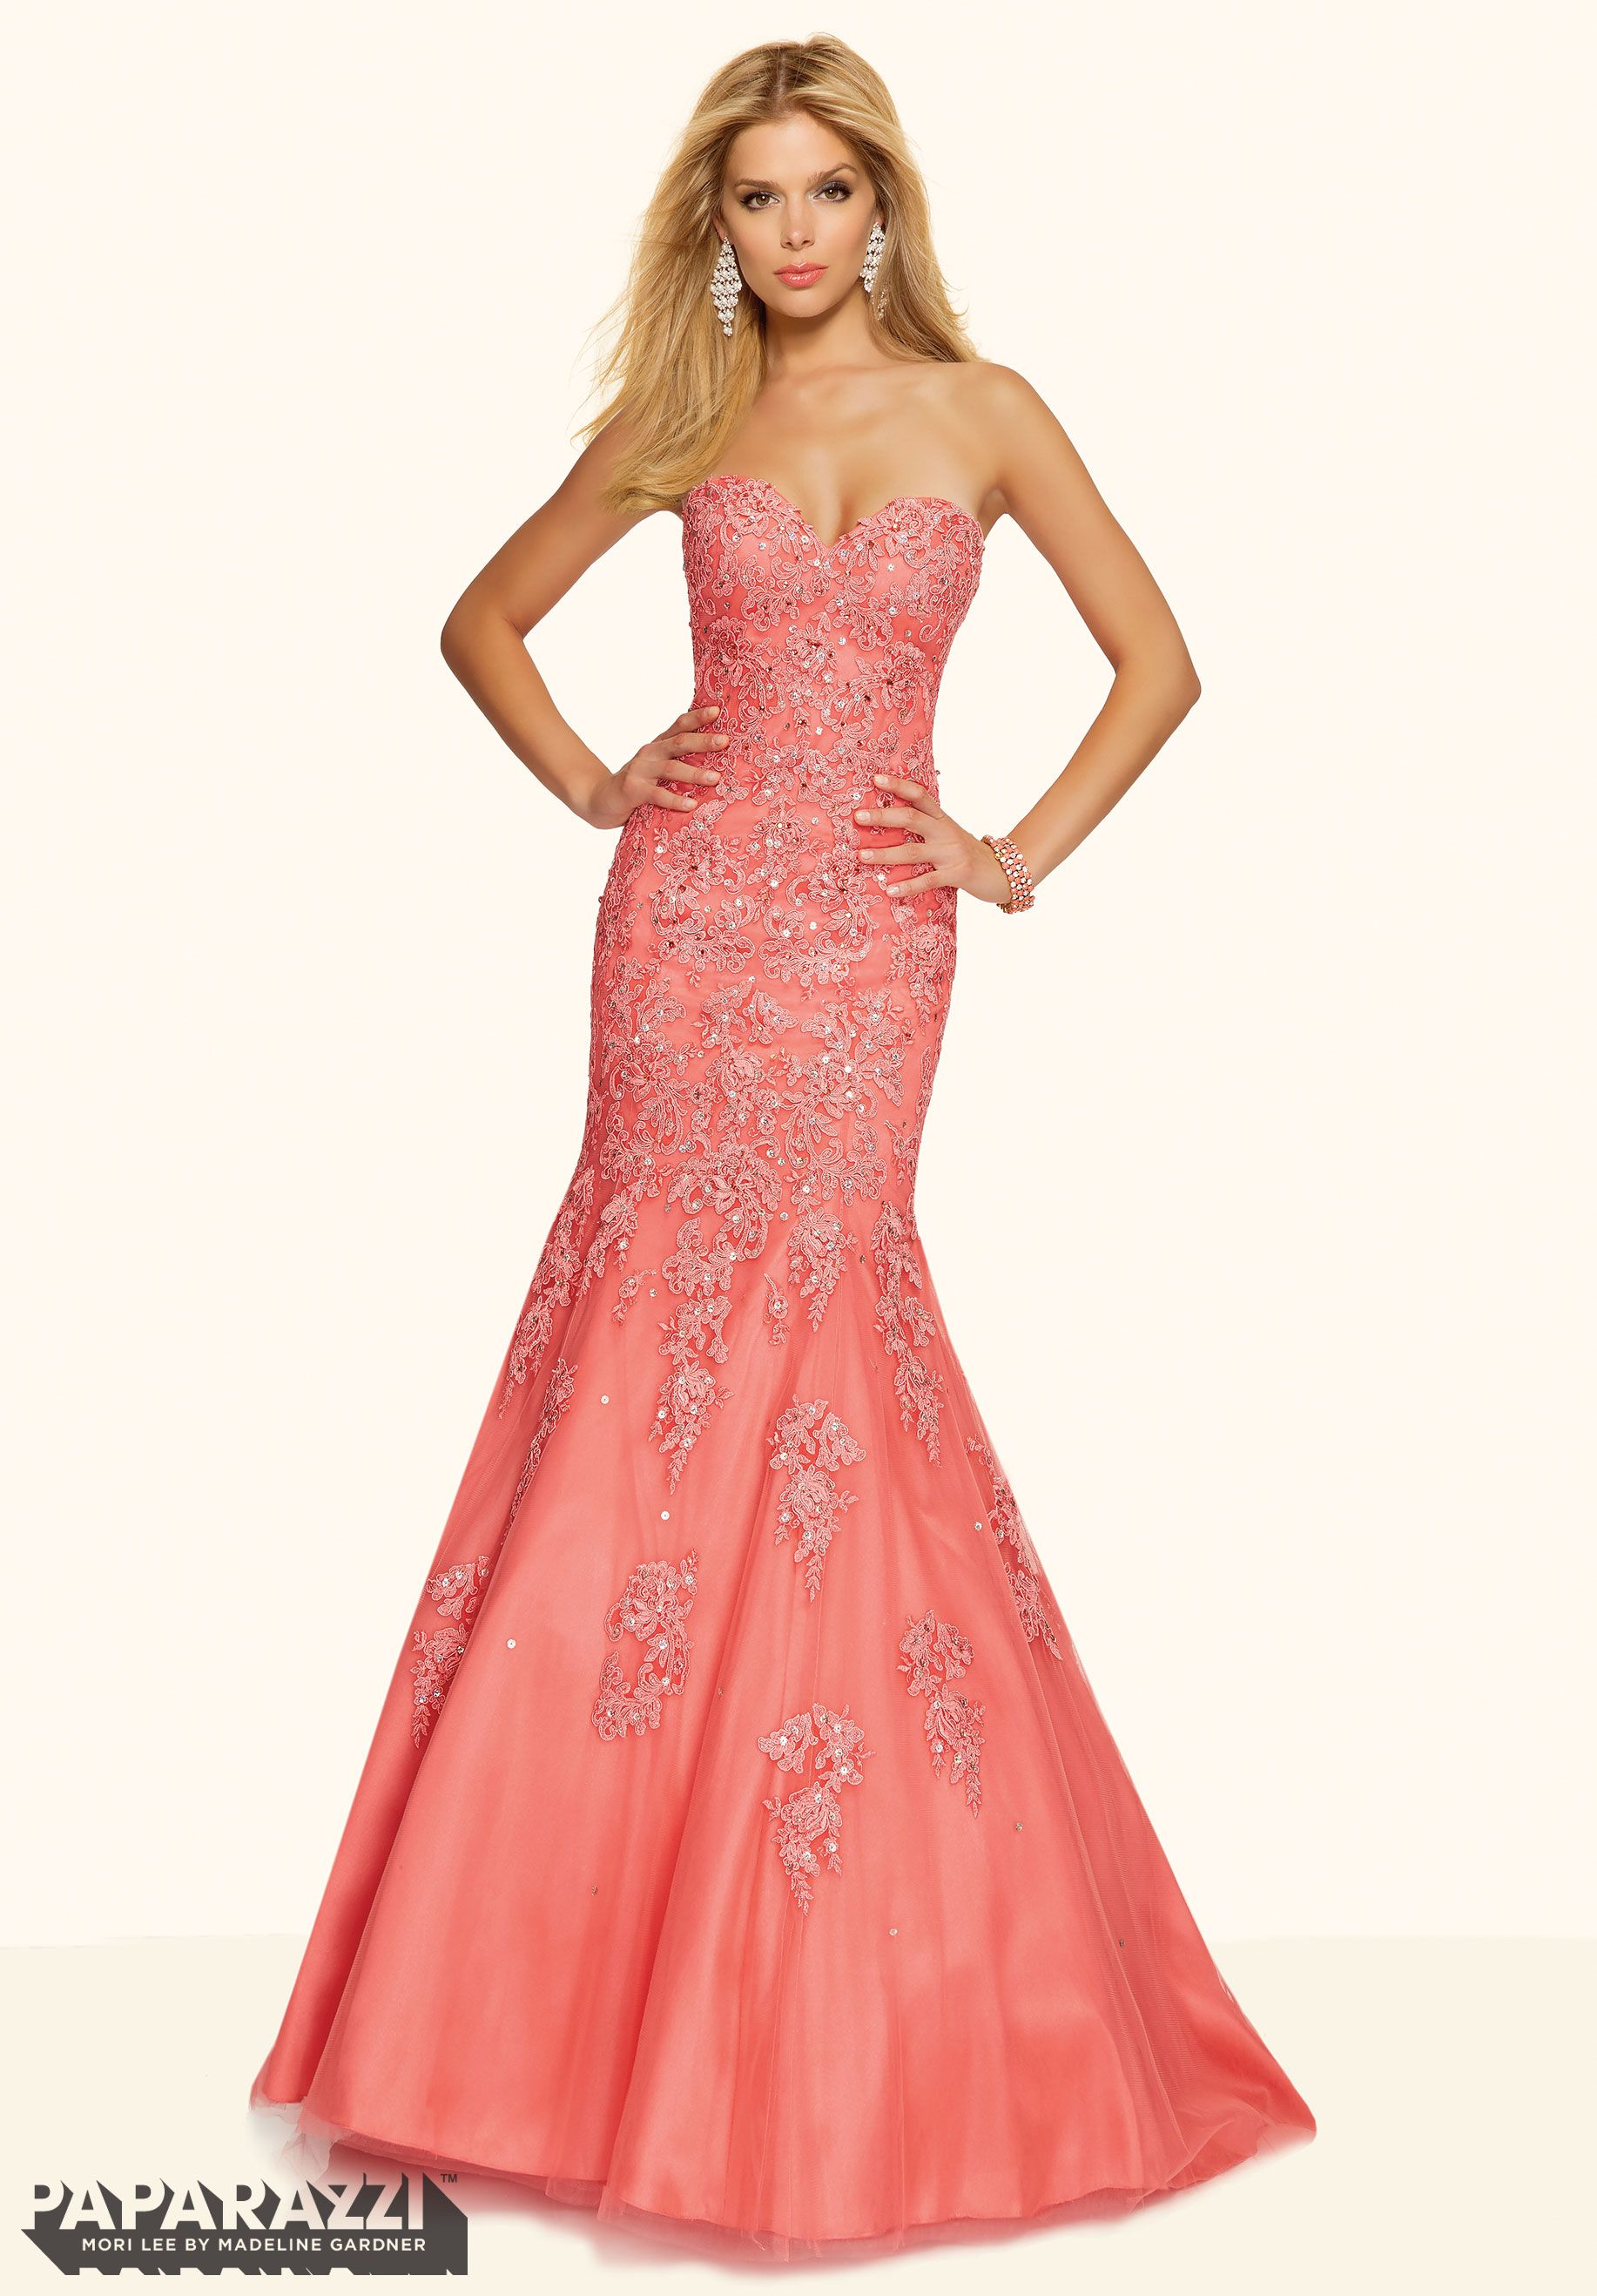 Morilee 98002 | Dress Gallery Wichita Ks | Pinterest | Comprar